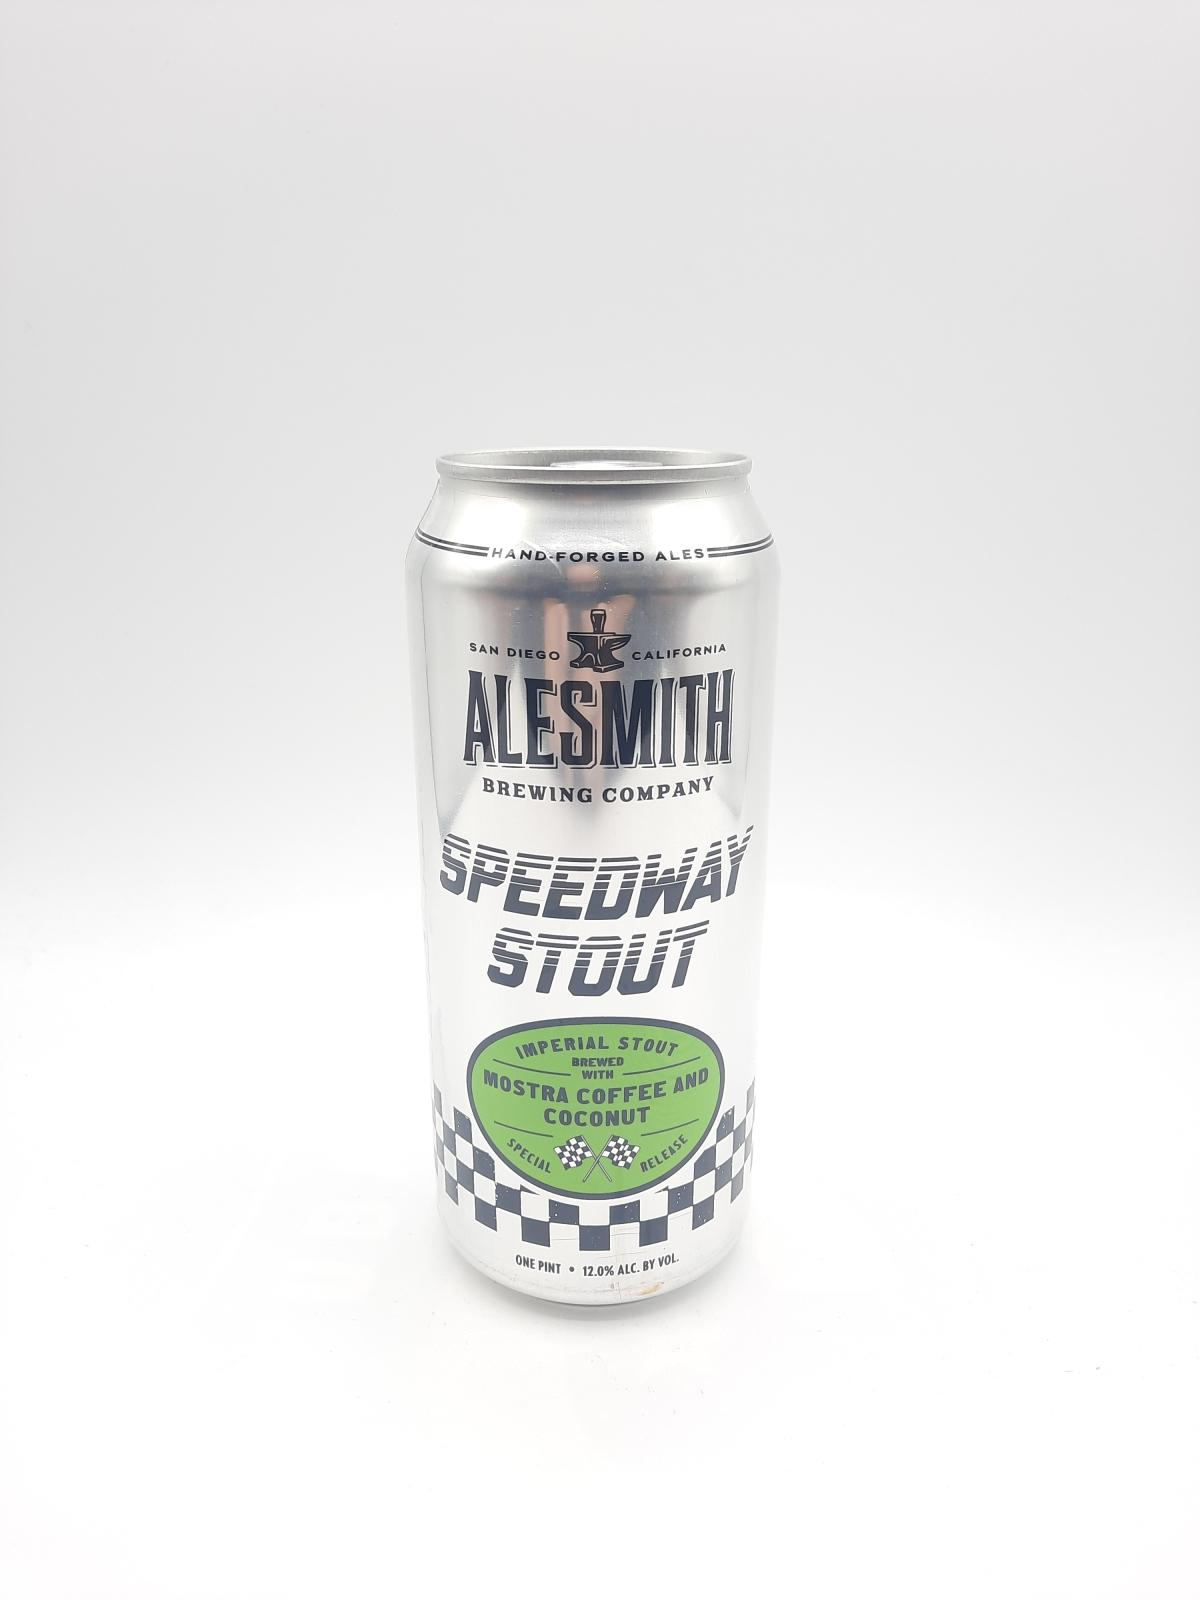 Image Speedway stout Mostra Coffee, Coconut